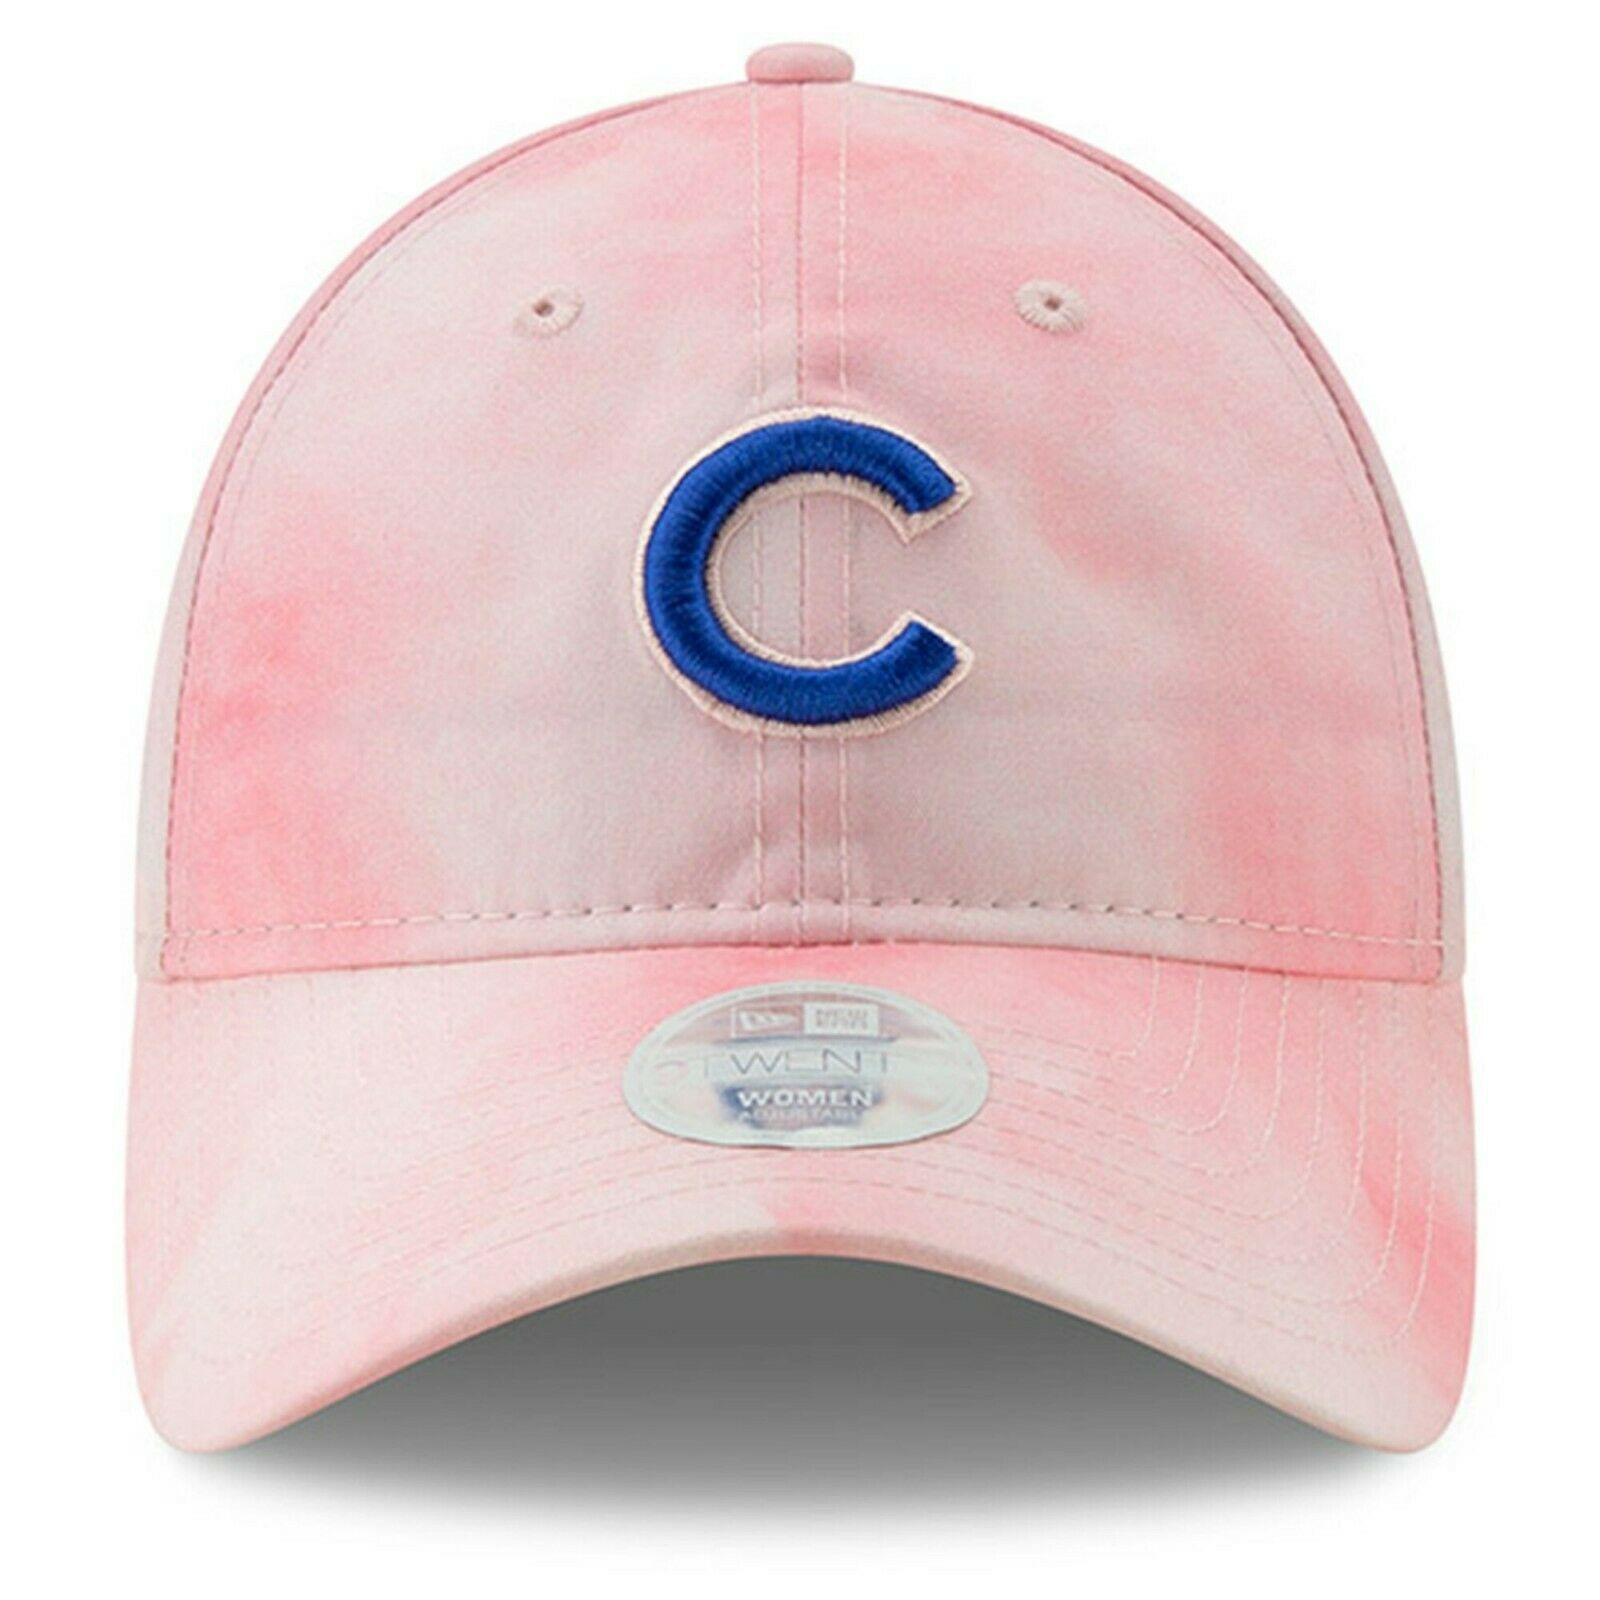 4f01106f85a678 Chicago Cubs Mothers Day Adjustable Cap and 38 similar items. S l1600